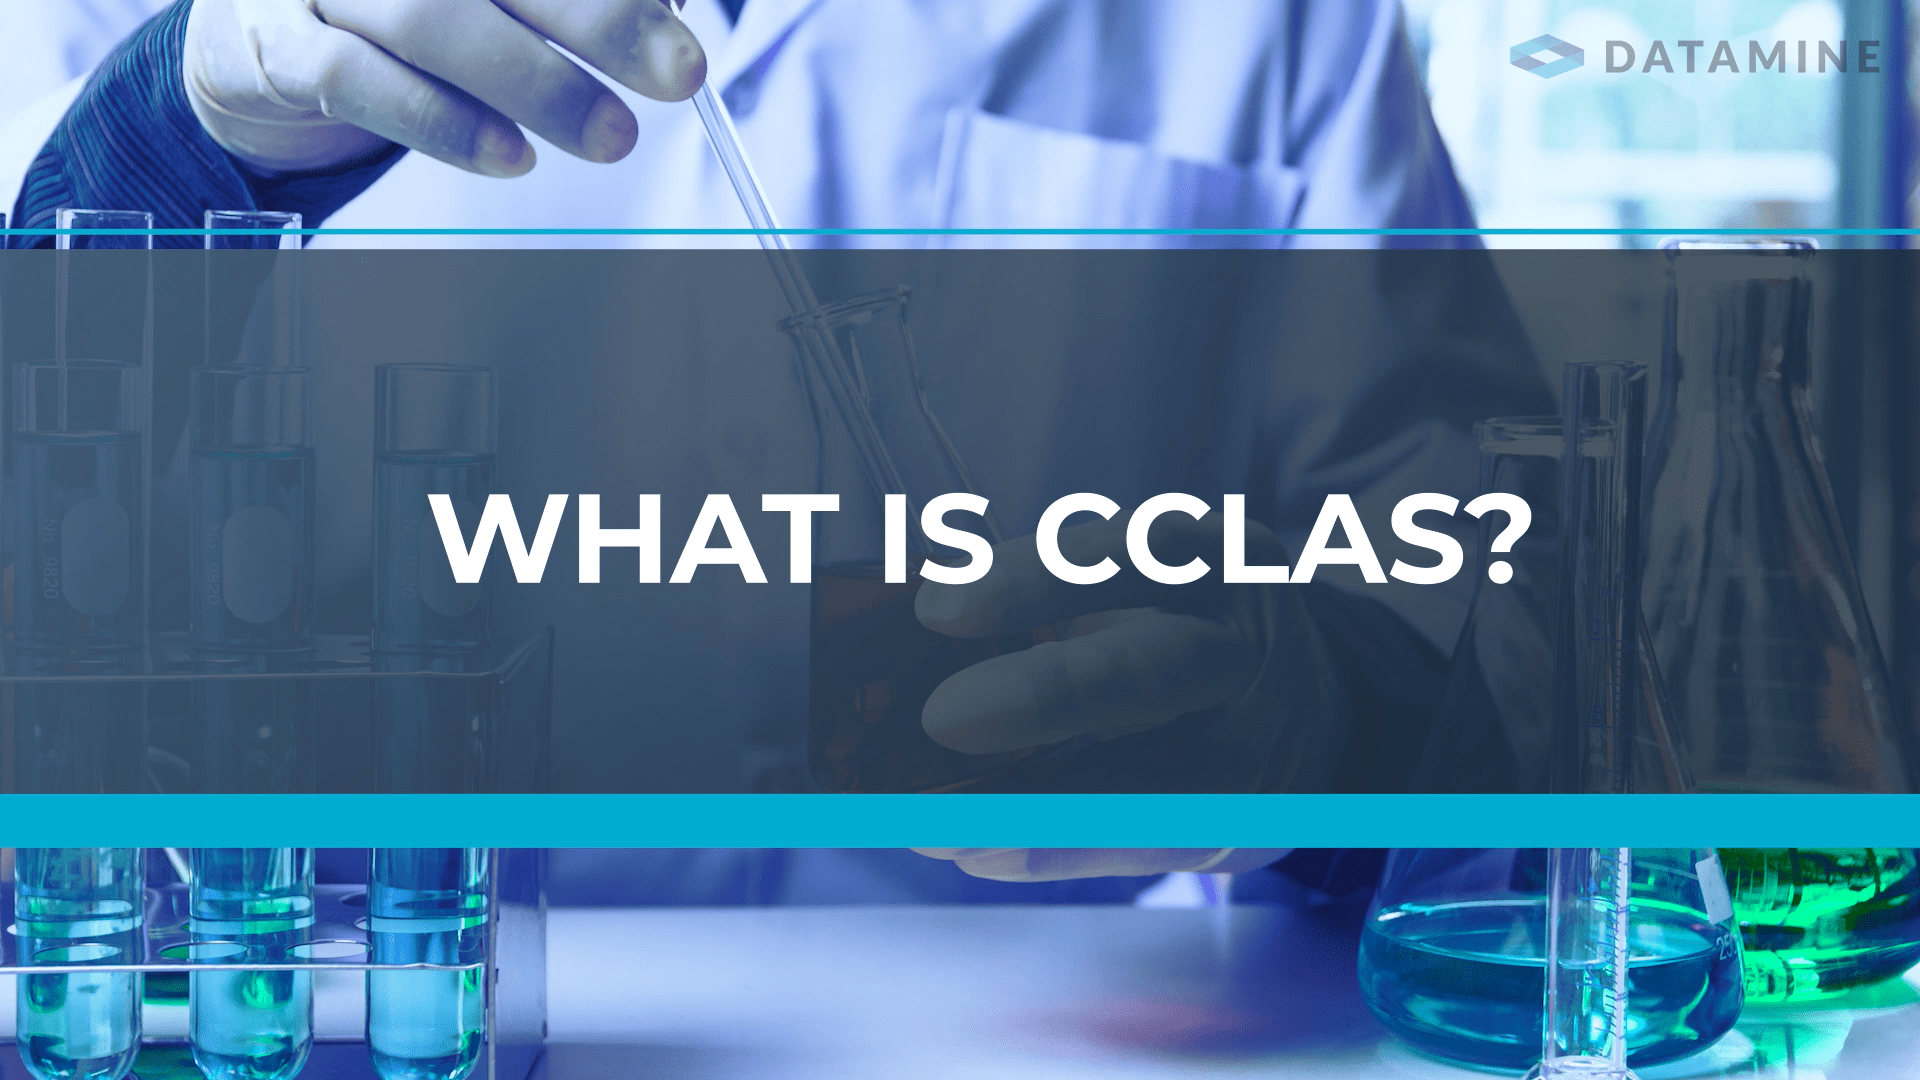 first frame of CCLAS overview video - words 'WHAT IS CCLAS' written on a lab background image